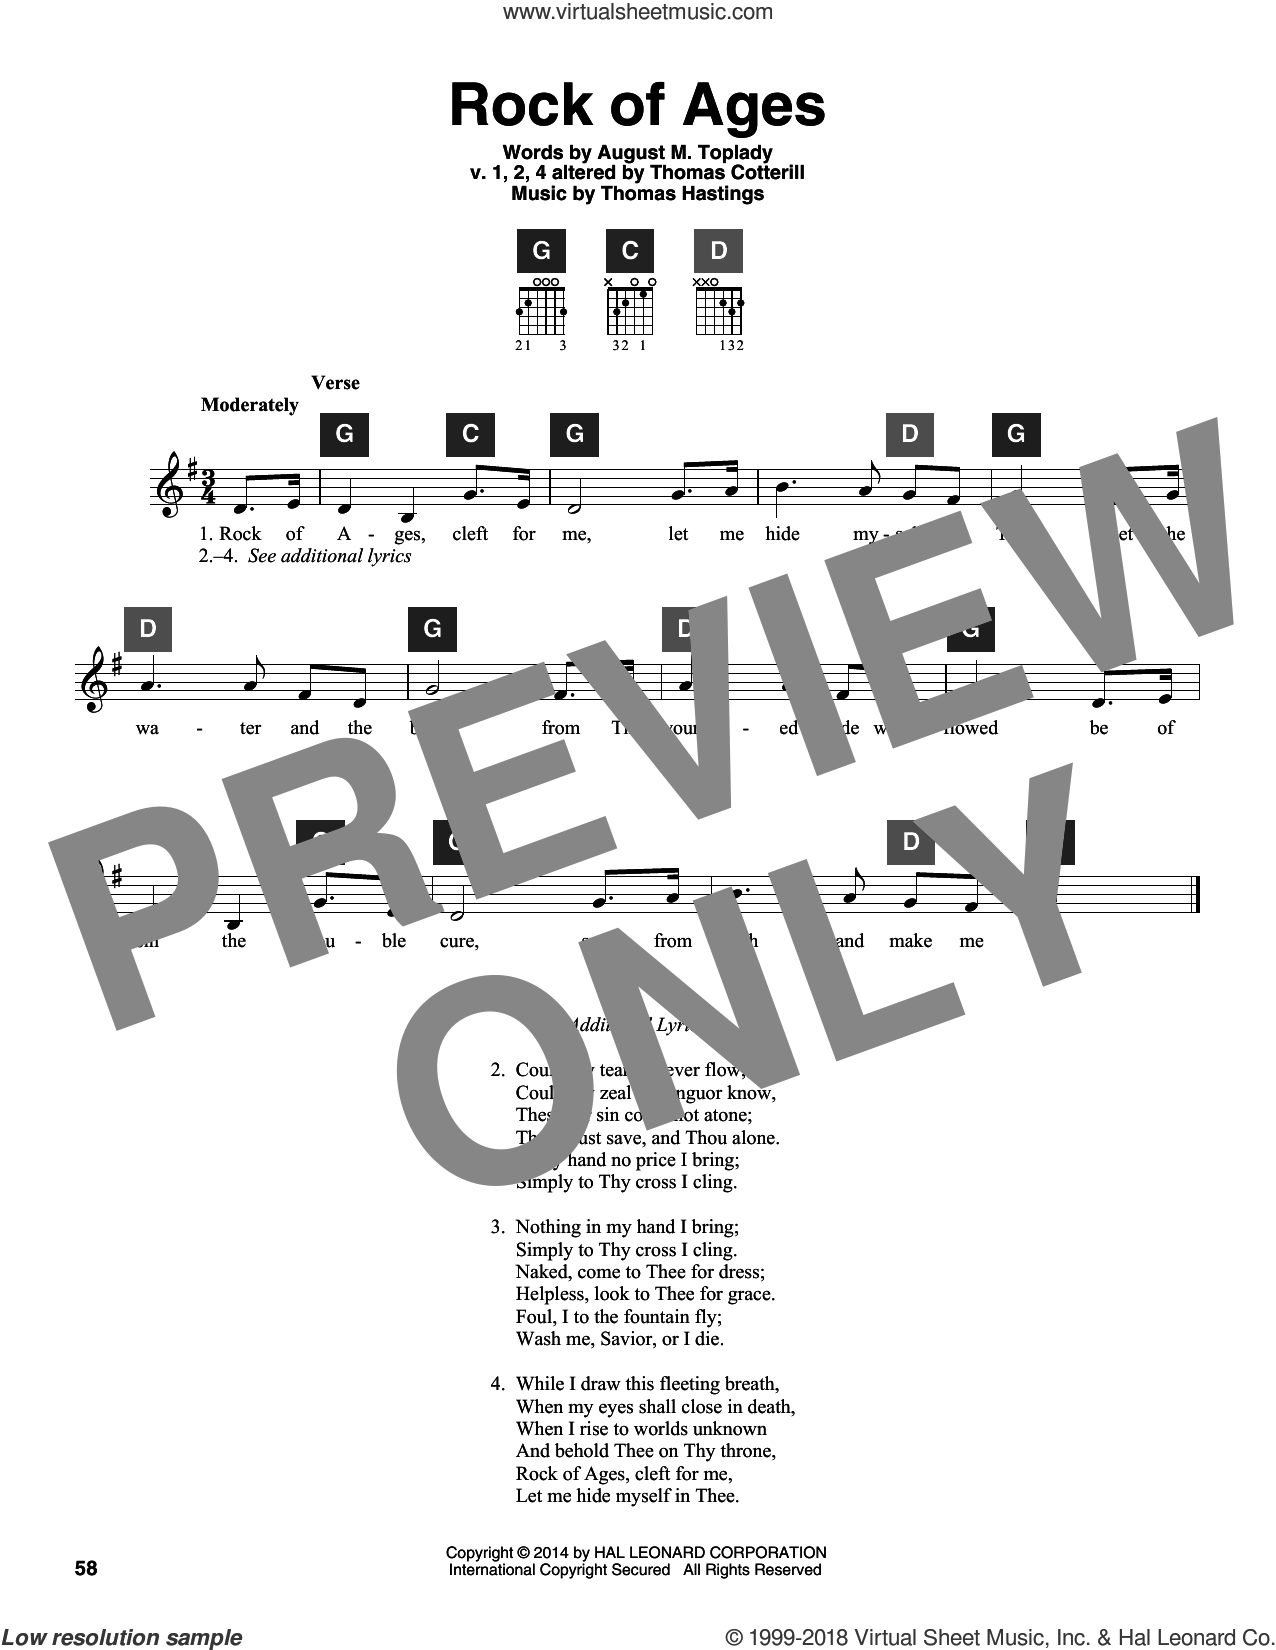 Rock Of Ages sheet music for guitar solo (ChordBuddy system) by V.1,2,4 Thomas Cotterill, Augustus M. Toplady and Thomas Hastings. Score Image Preview.